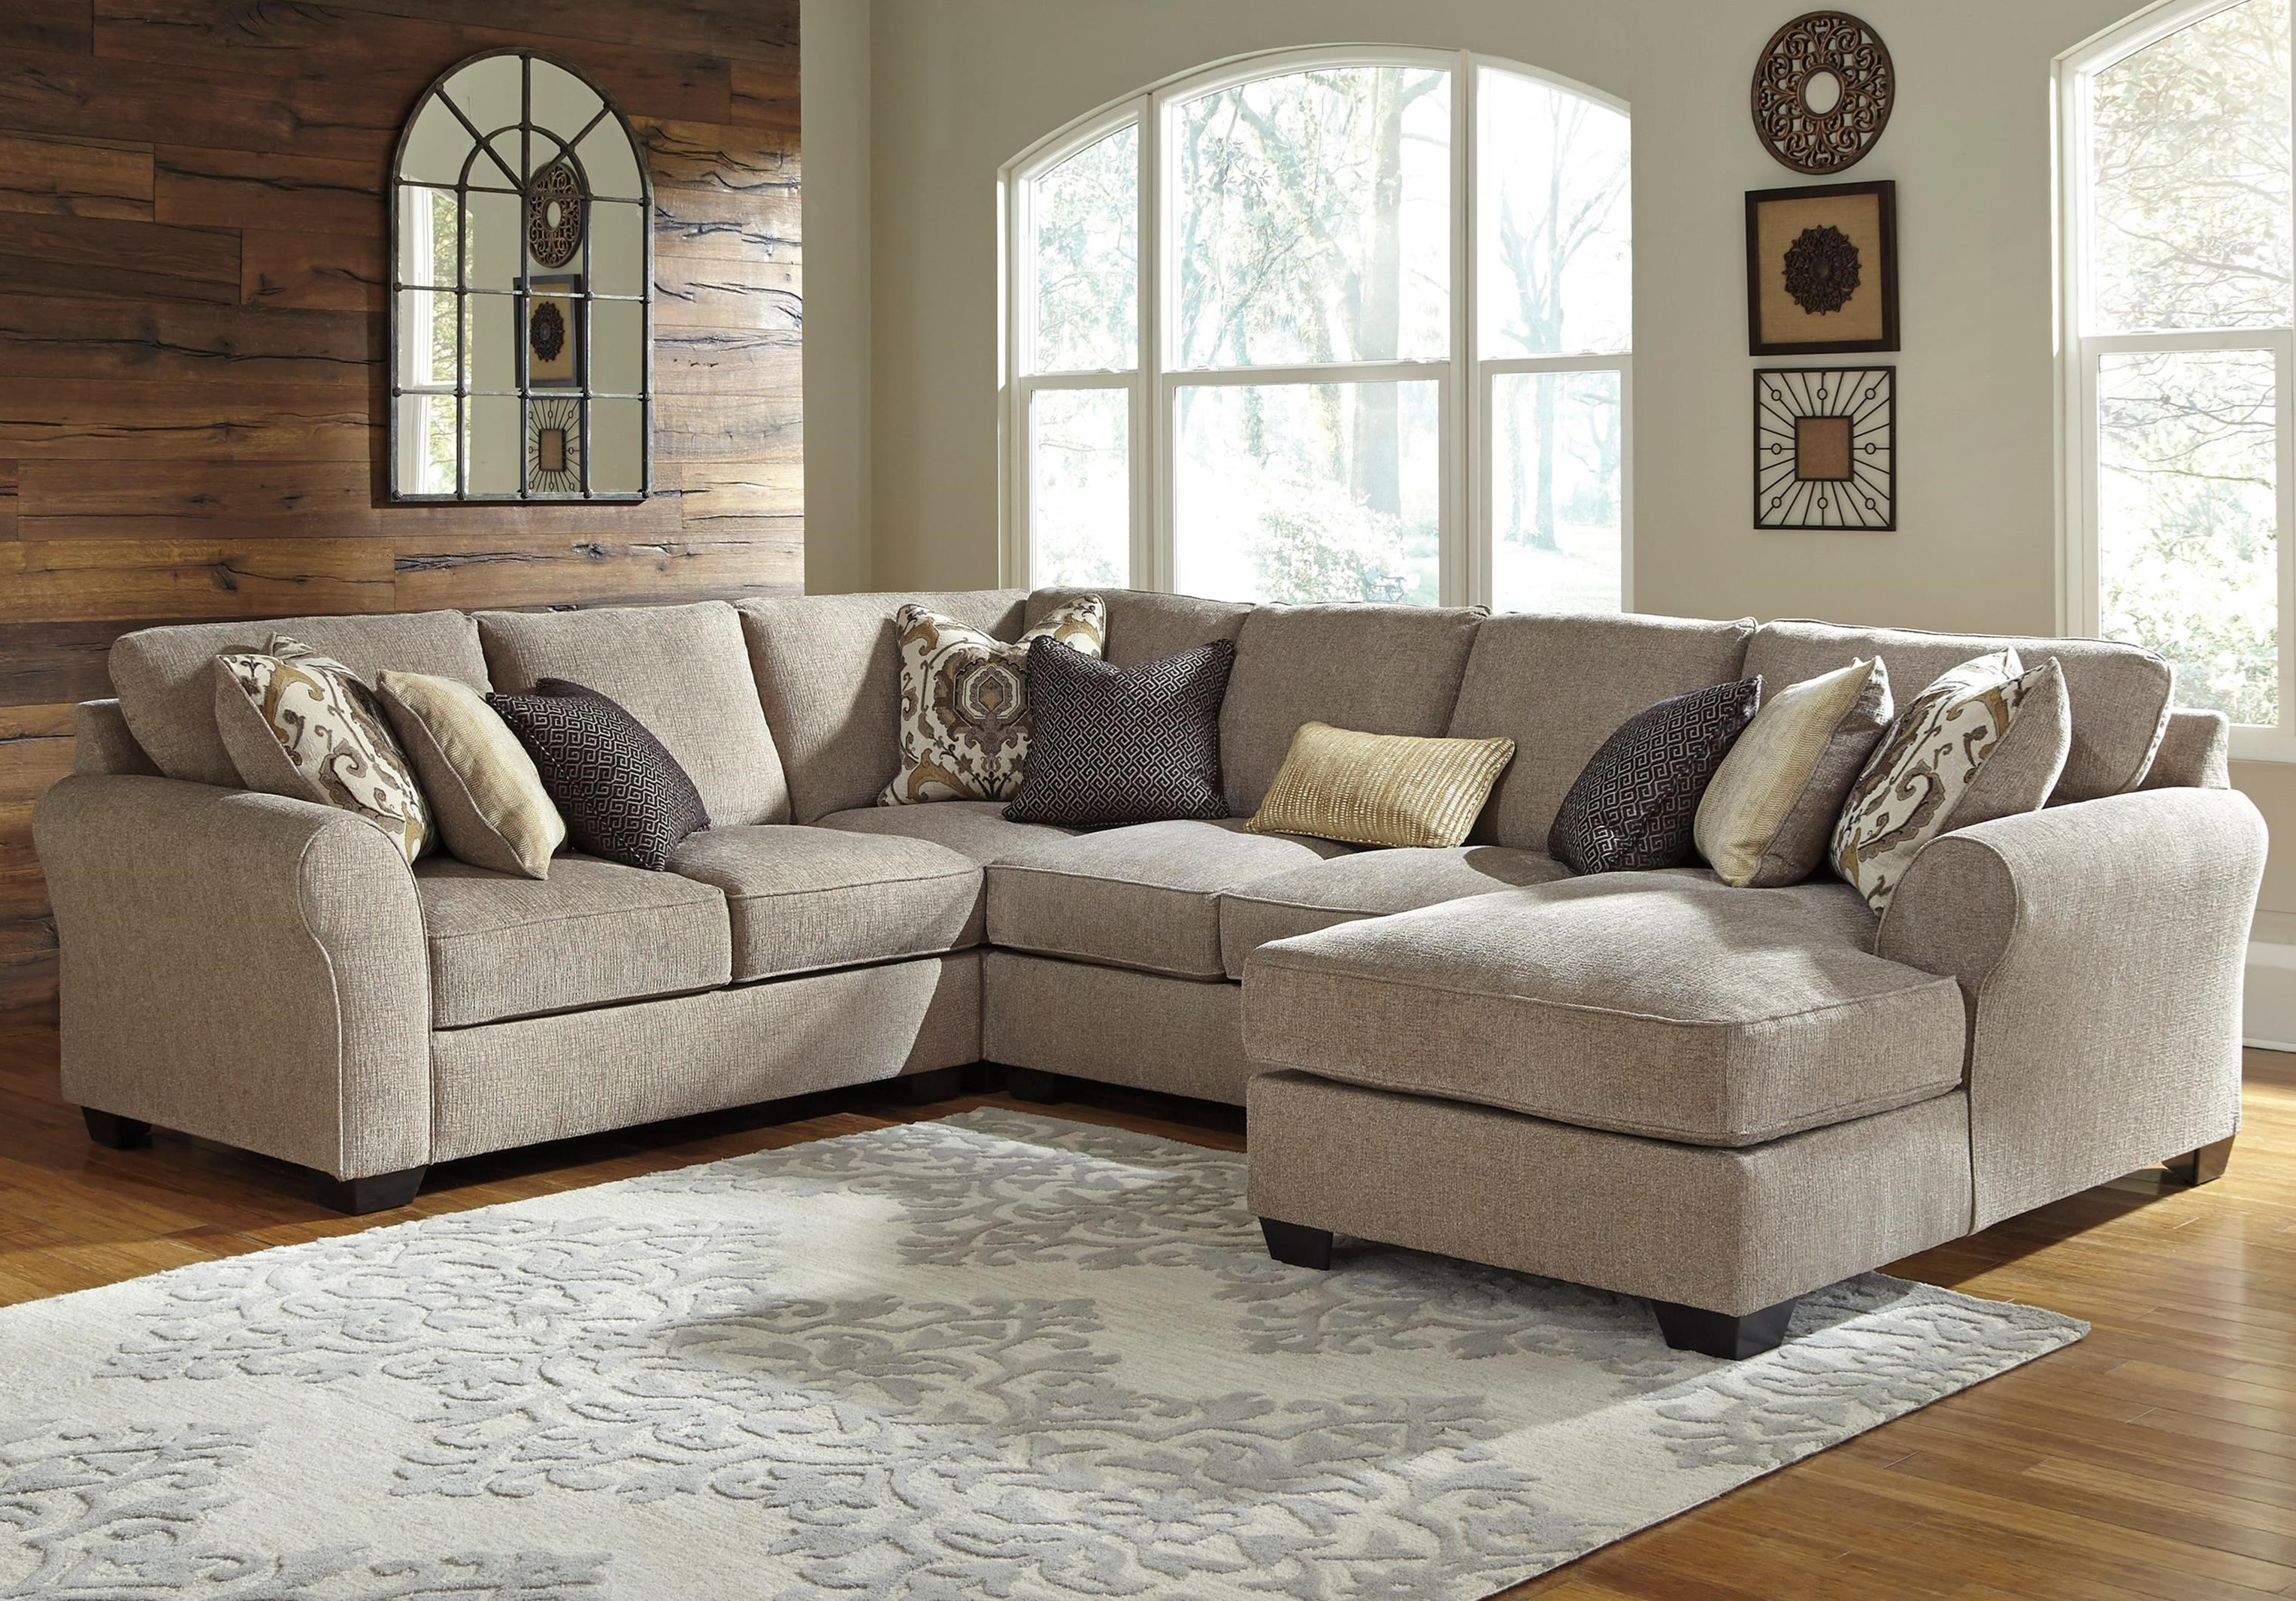 Pantomine 4-Piece Sectional with Right Chaise by Benchcraft at Northeast Factory Direct